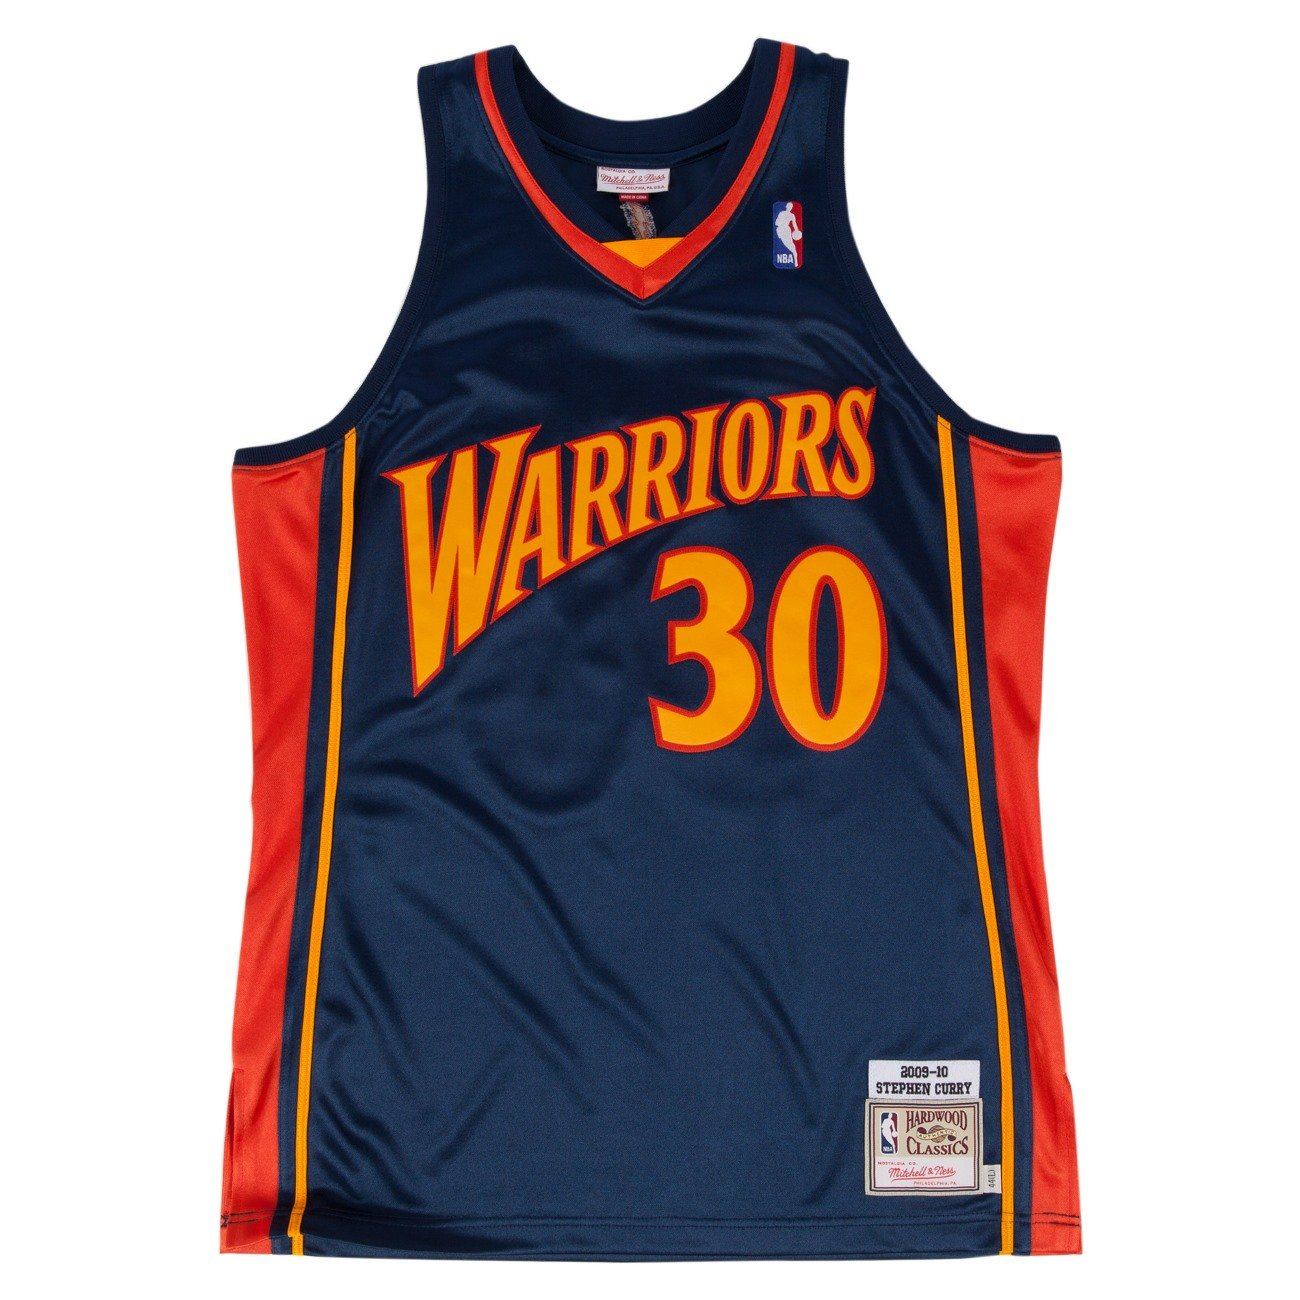 yxcix Amazon.com   Mitchell   Ness Stephen Curry 2009-10 Authentic ... 3f8b1b268